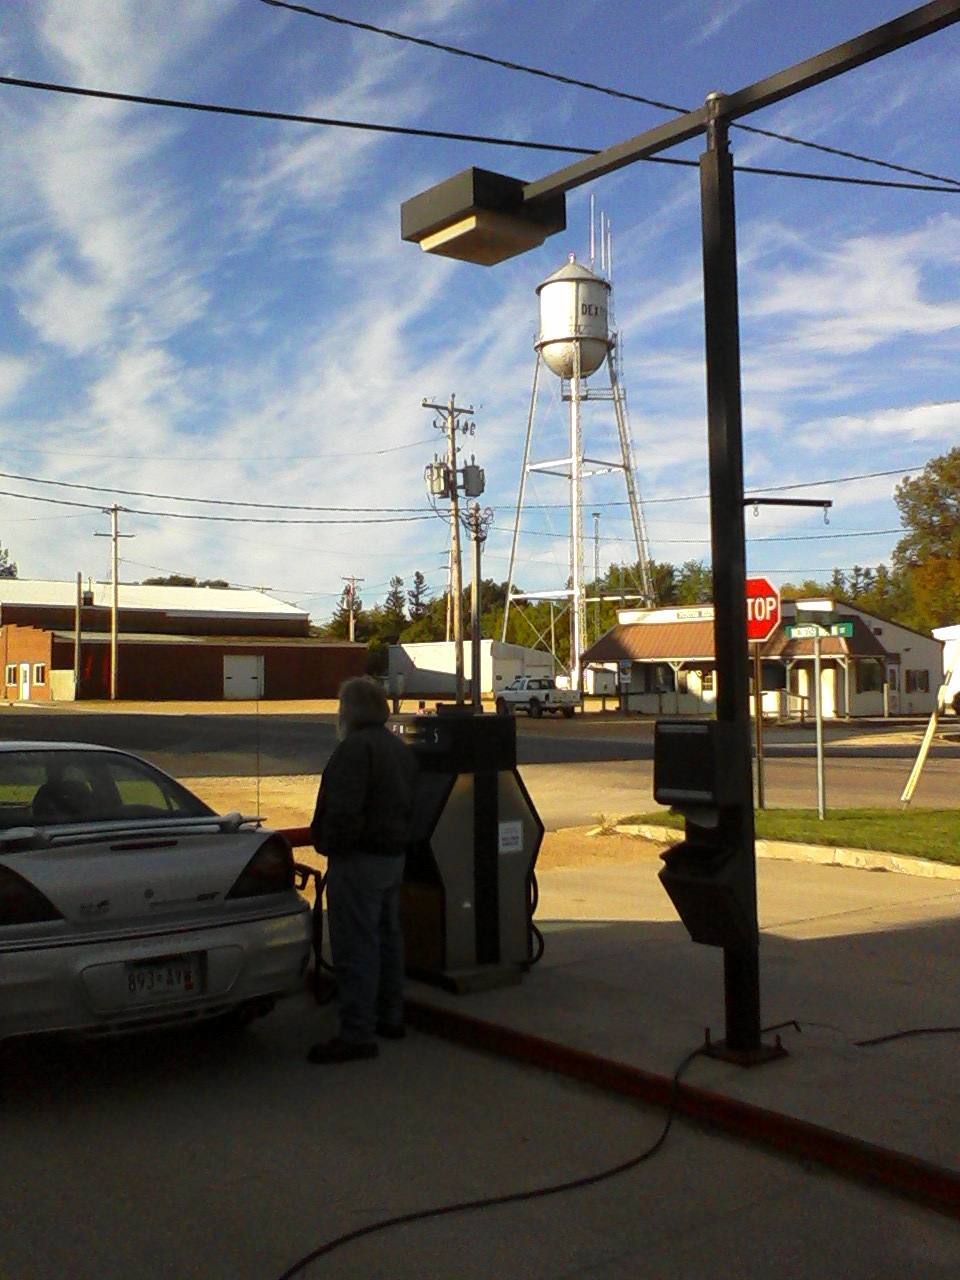 nick s photo essay small town life 2010 jim owner and mechanic at dexter mobil fills a customer s car above him rises the town s water tower